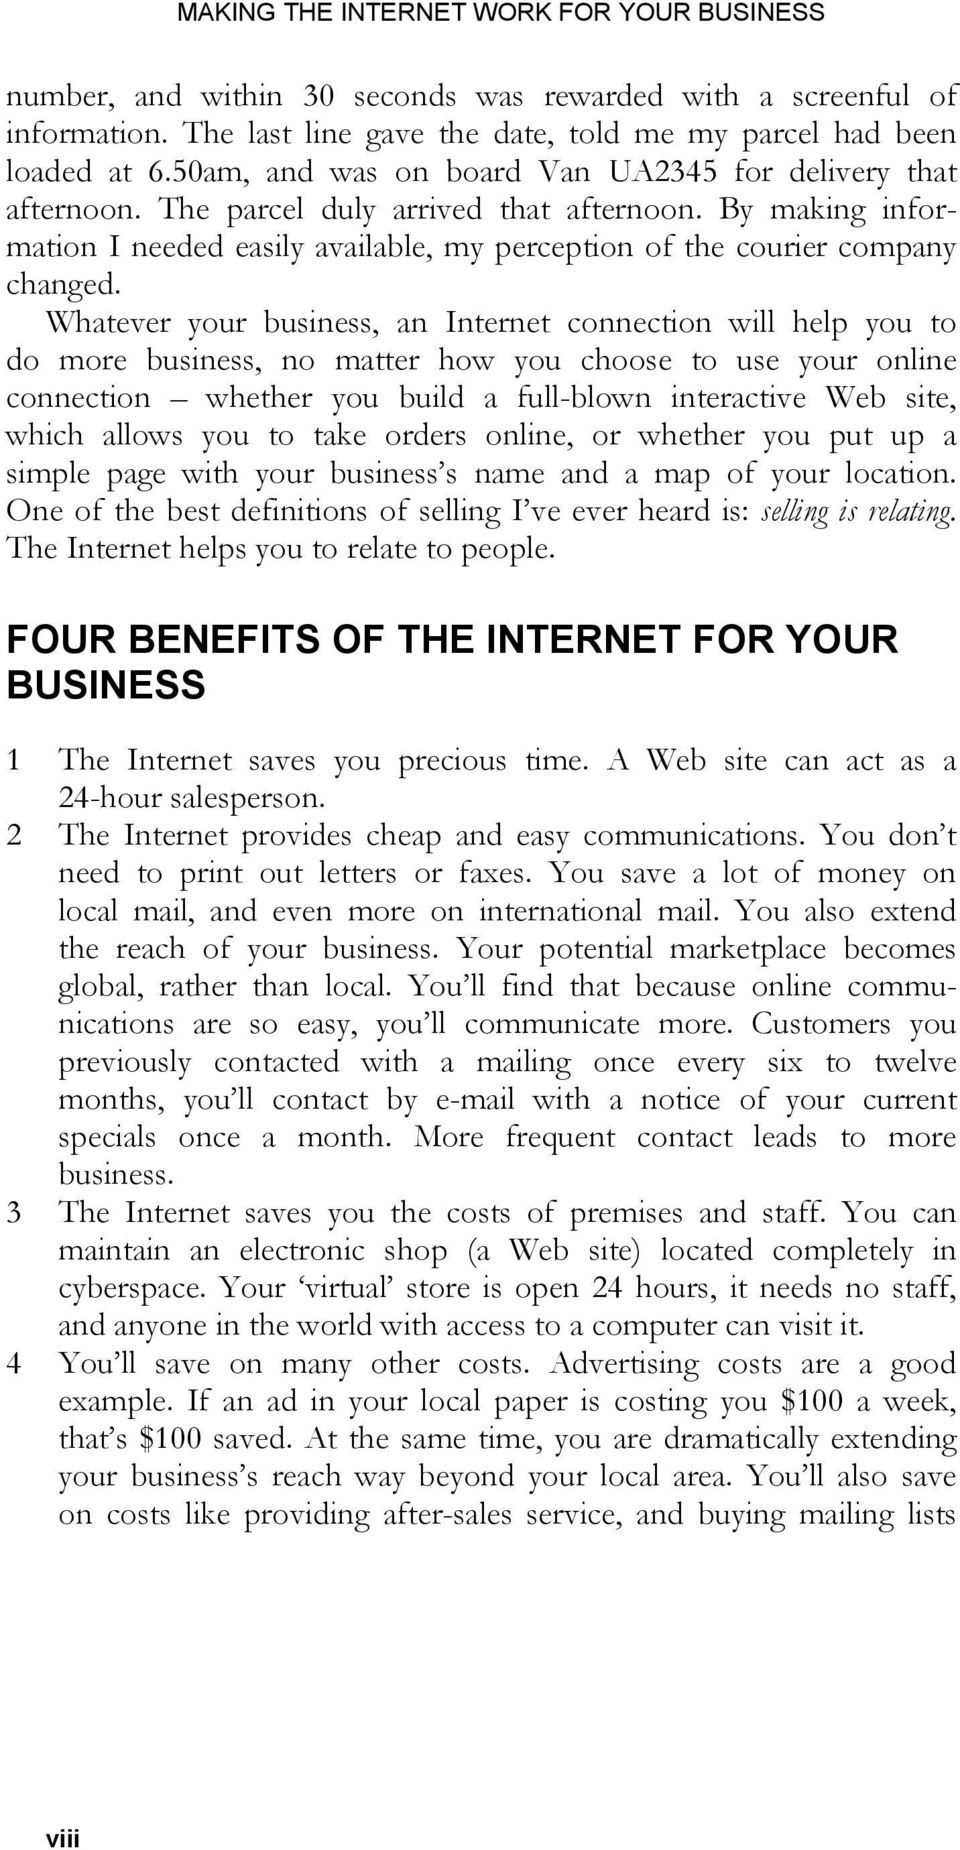 Whatever your business, an Internet connection will help you to do more business, no matter how you choose to use your online connection whether you build a full-blown interactive Web site, which